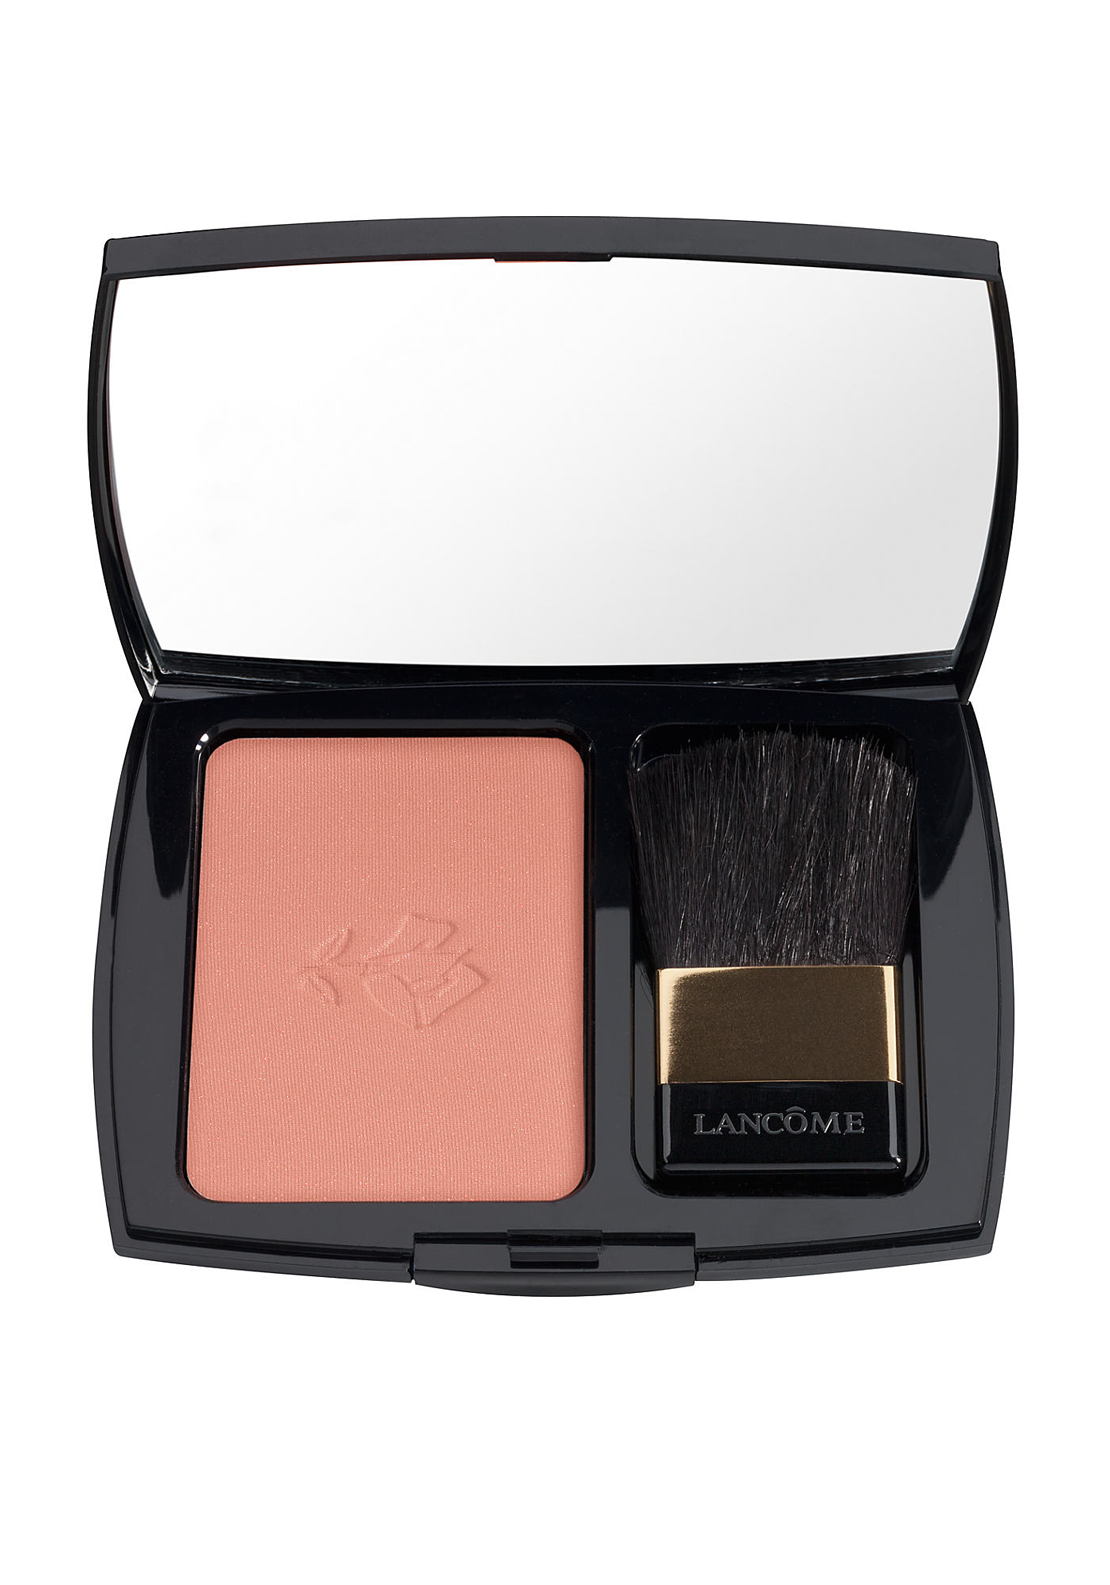 Lancome Blush Subtil Long Lasting Powder Blusher, 011